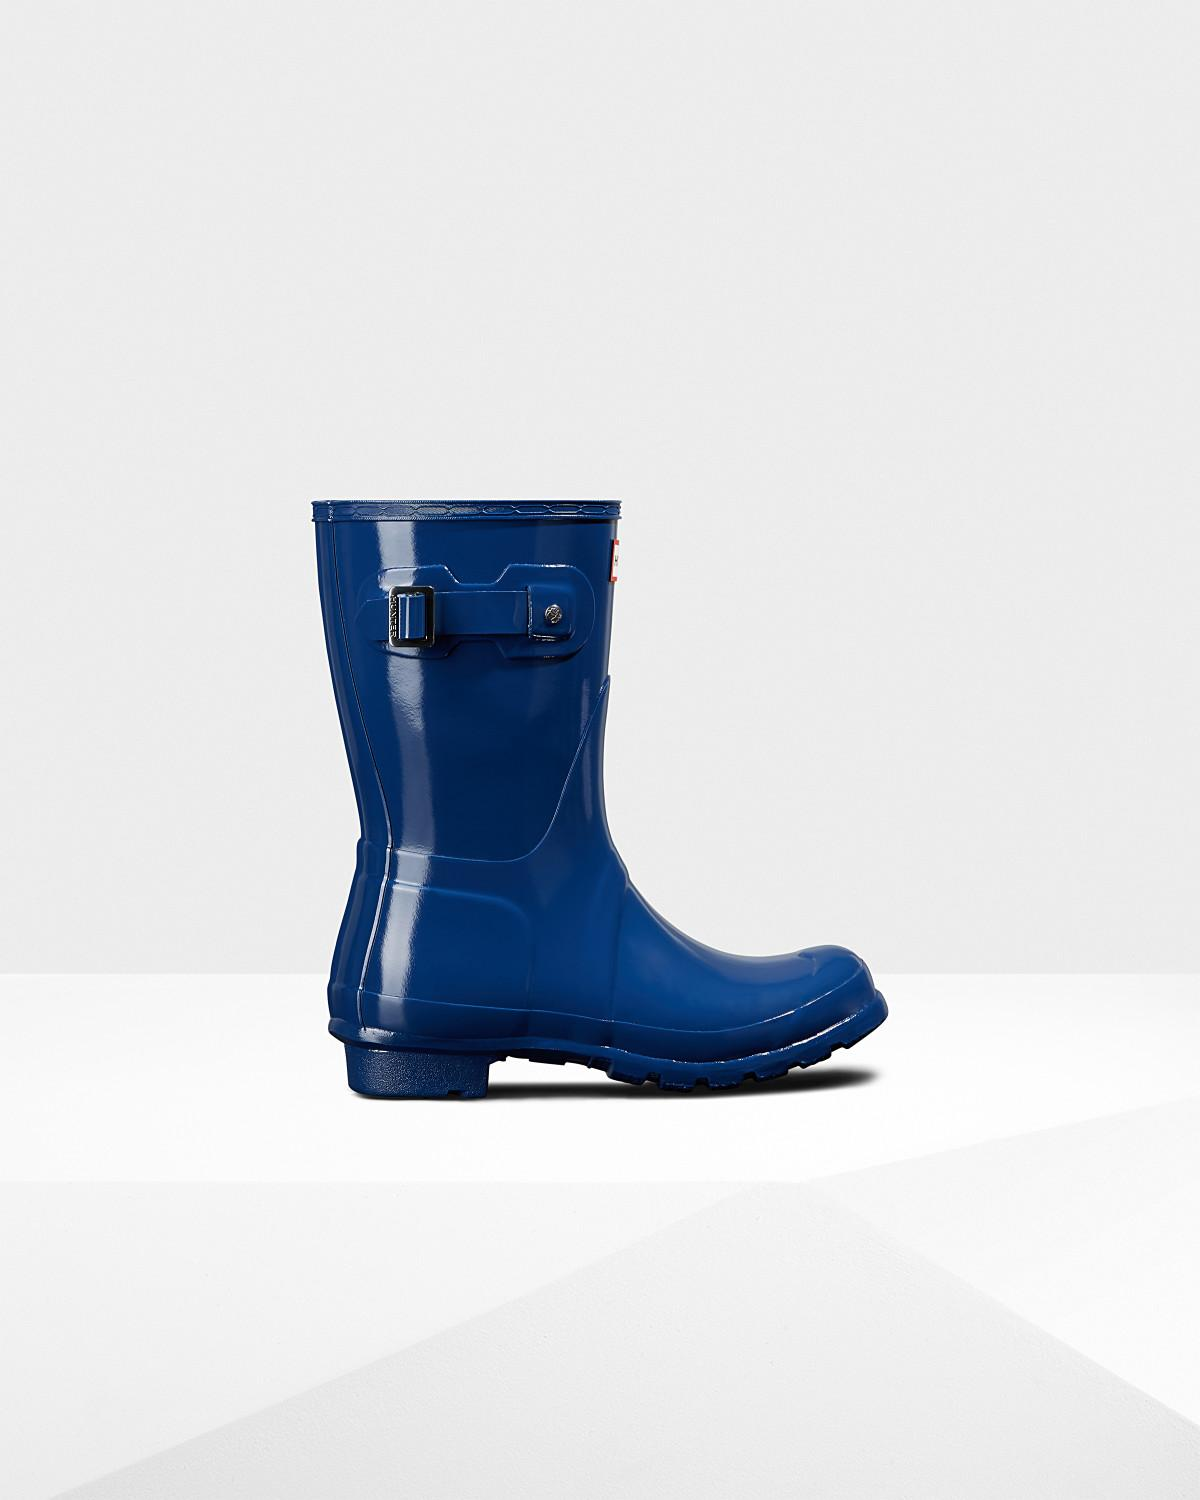 f0283786d66 Lyst - HUNTER Women s Original Short Gloss Rain Boots in Blue